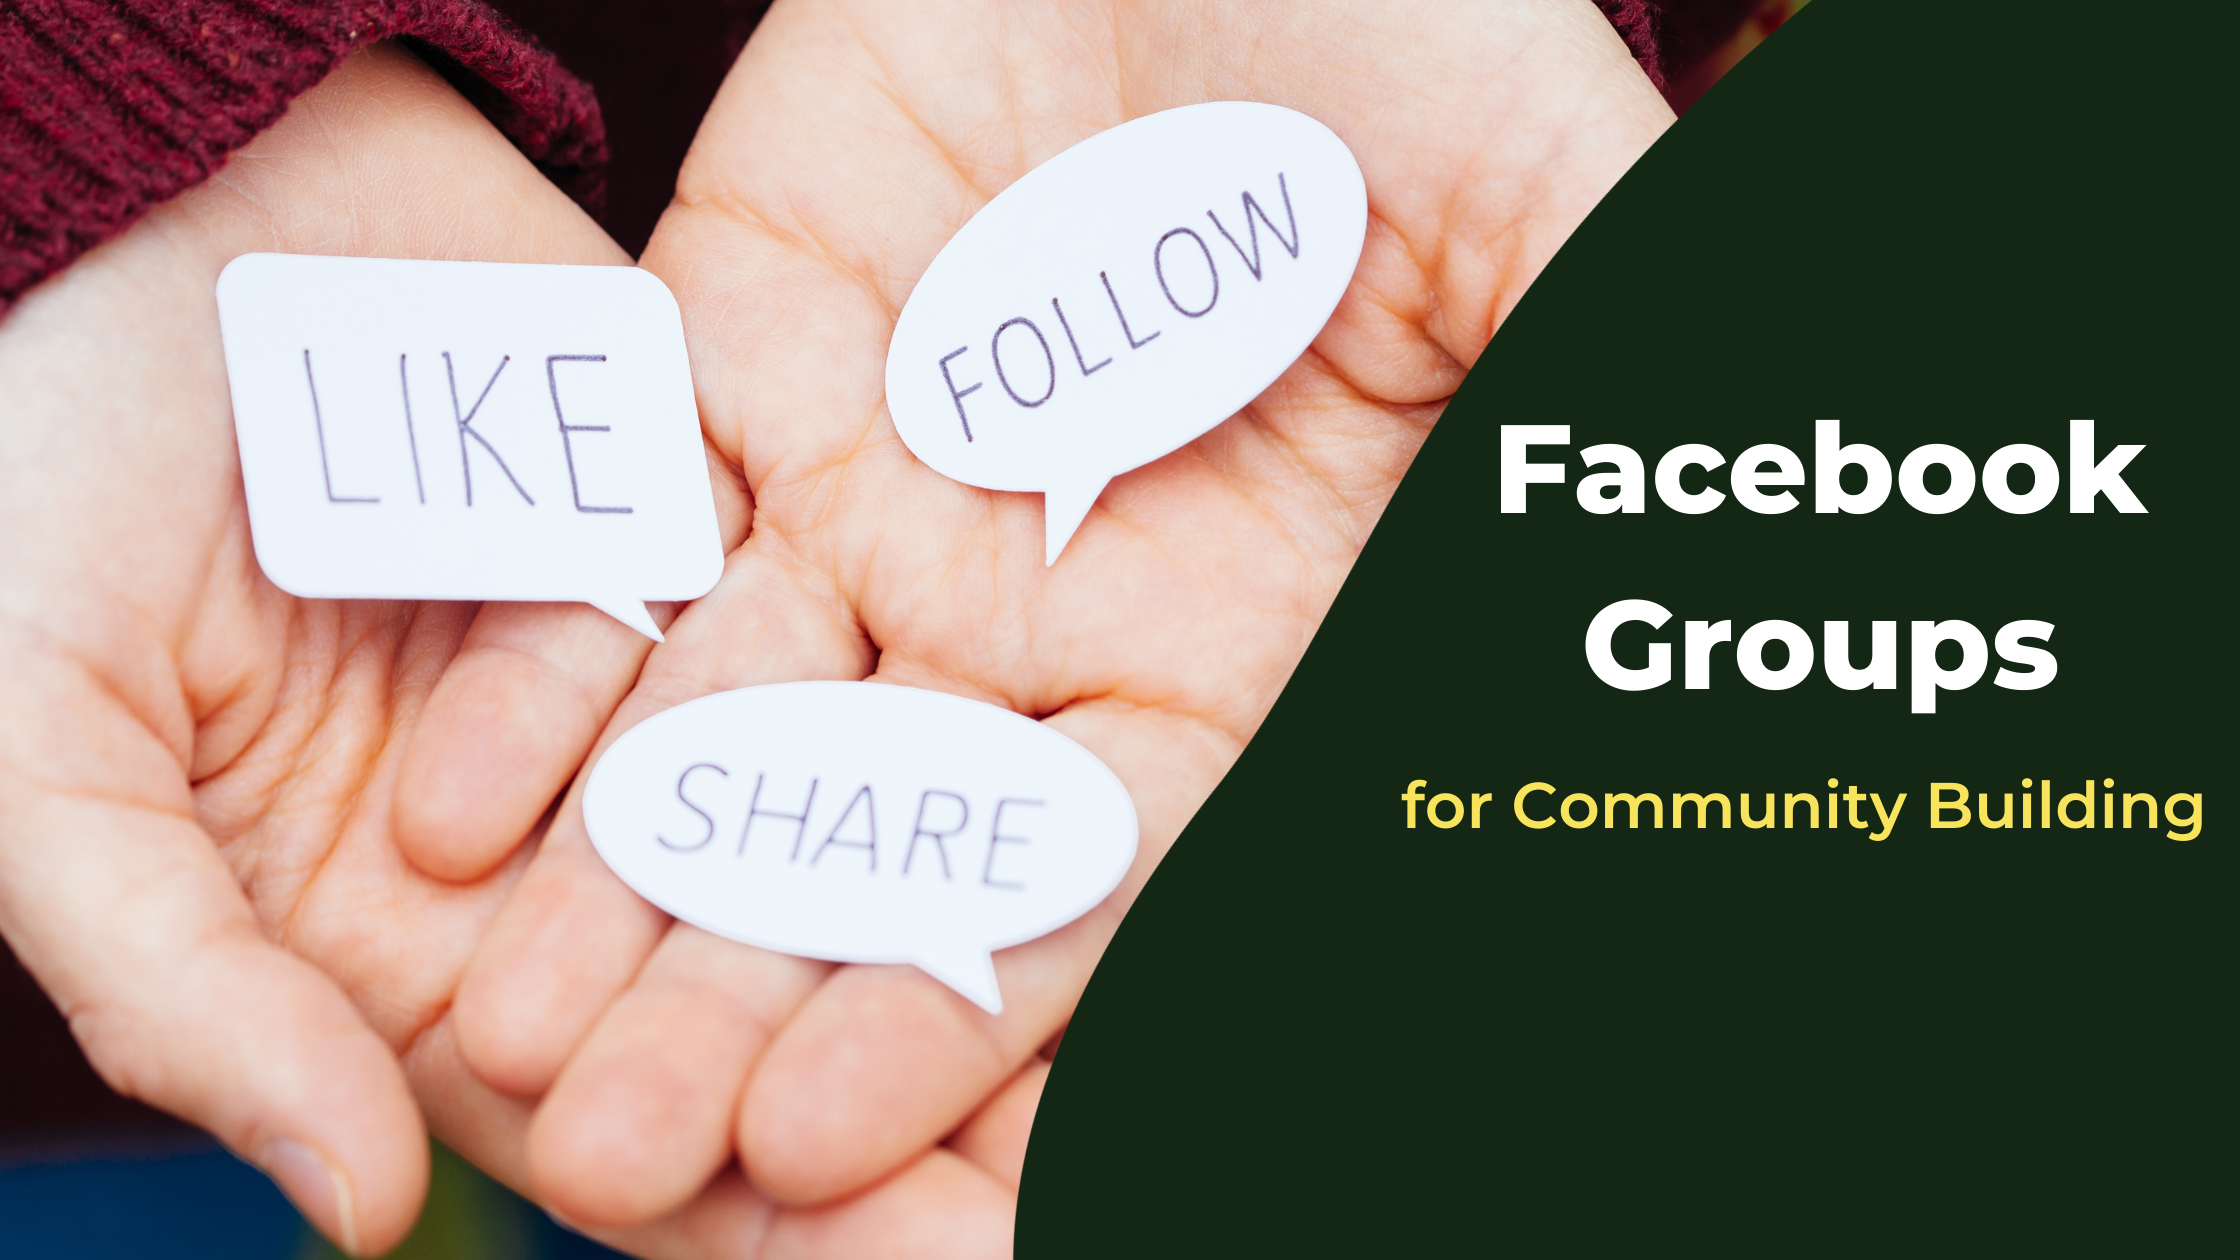 Facebook Groups for Community Building